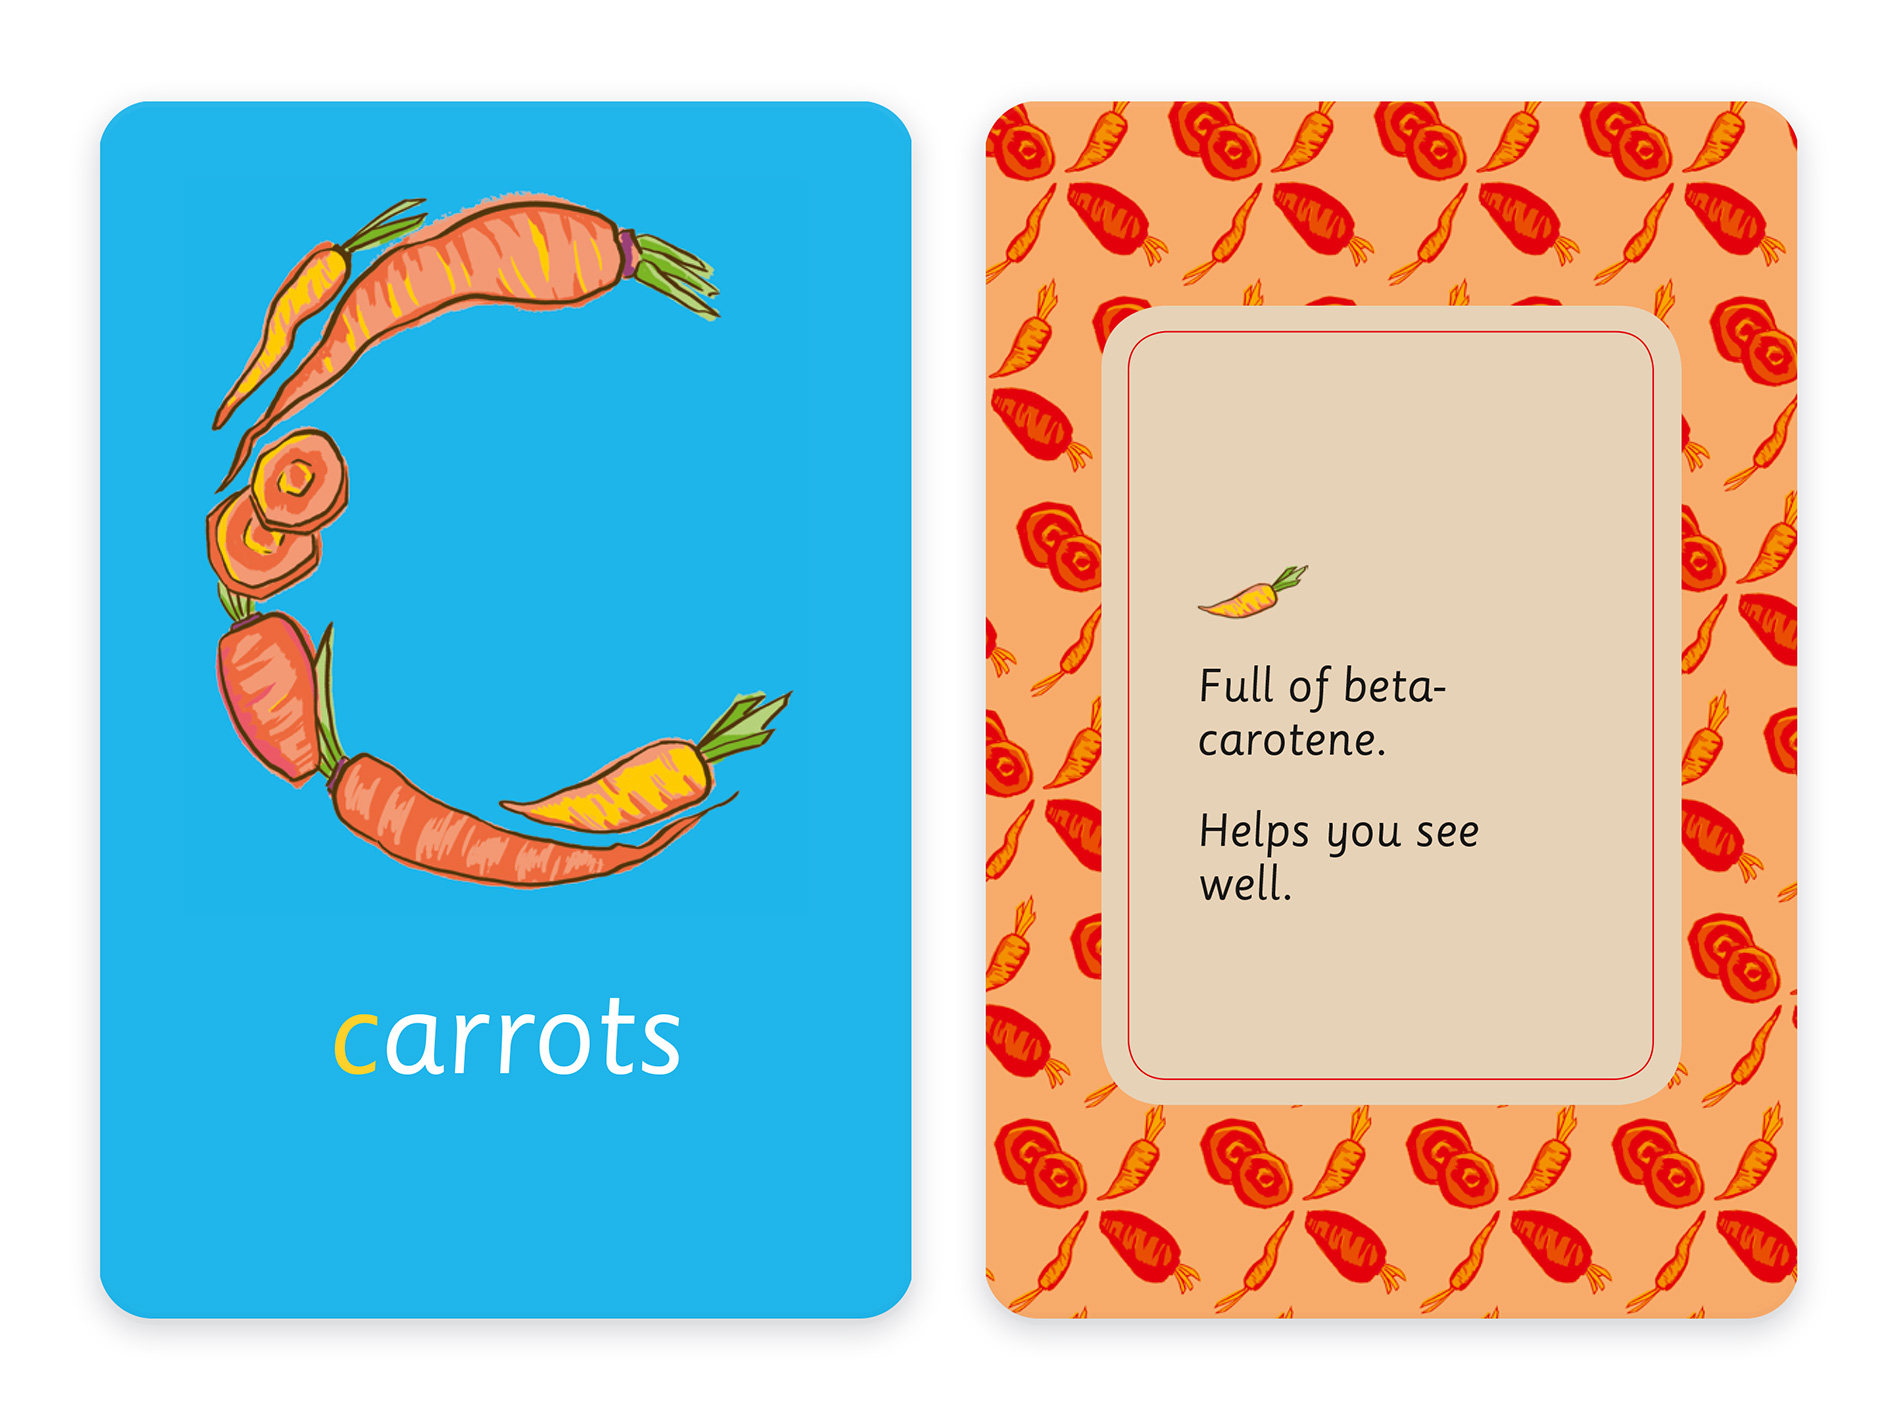 teaching-resource-flashcard-pattern-education-illustrations-carrot-by-fiona-dunnett.jpg